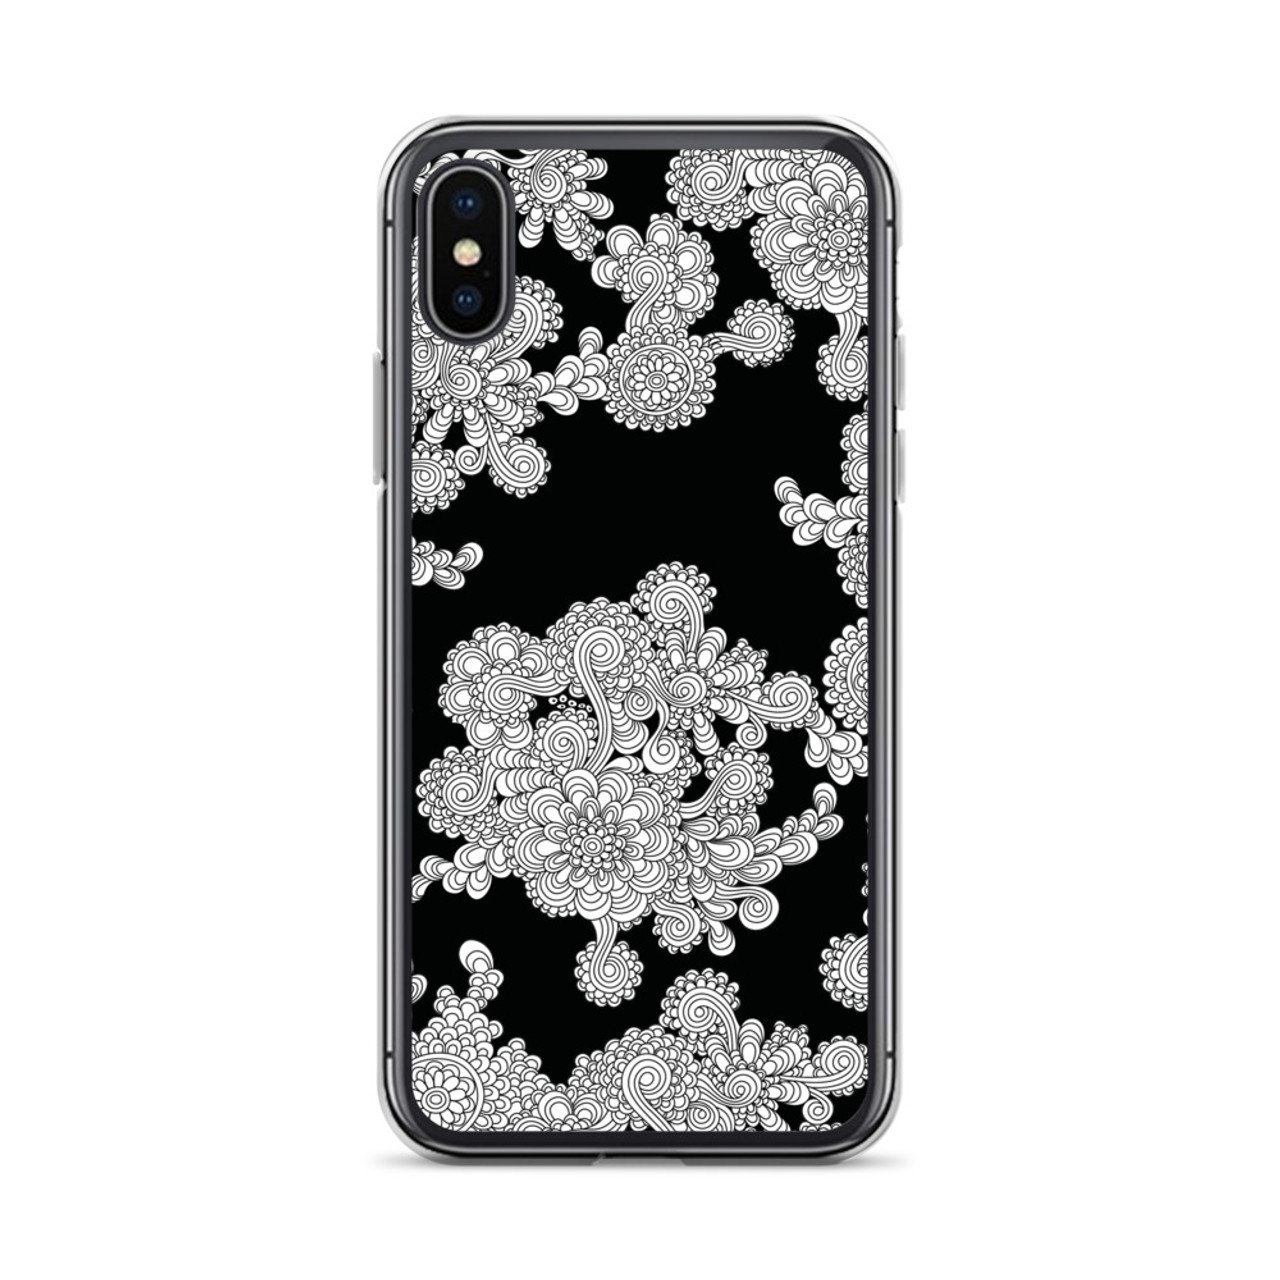 Ornate Bear iphone 11 case